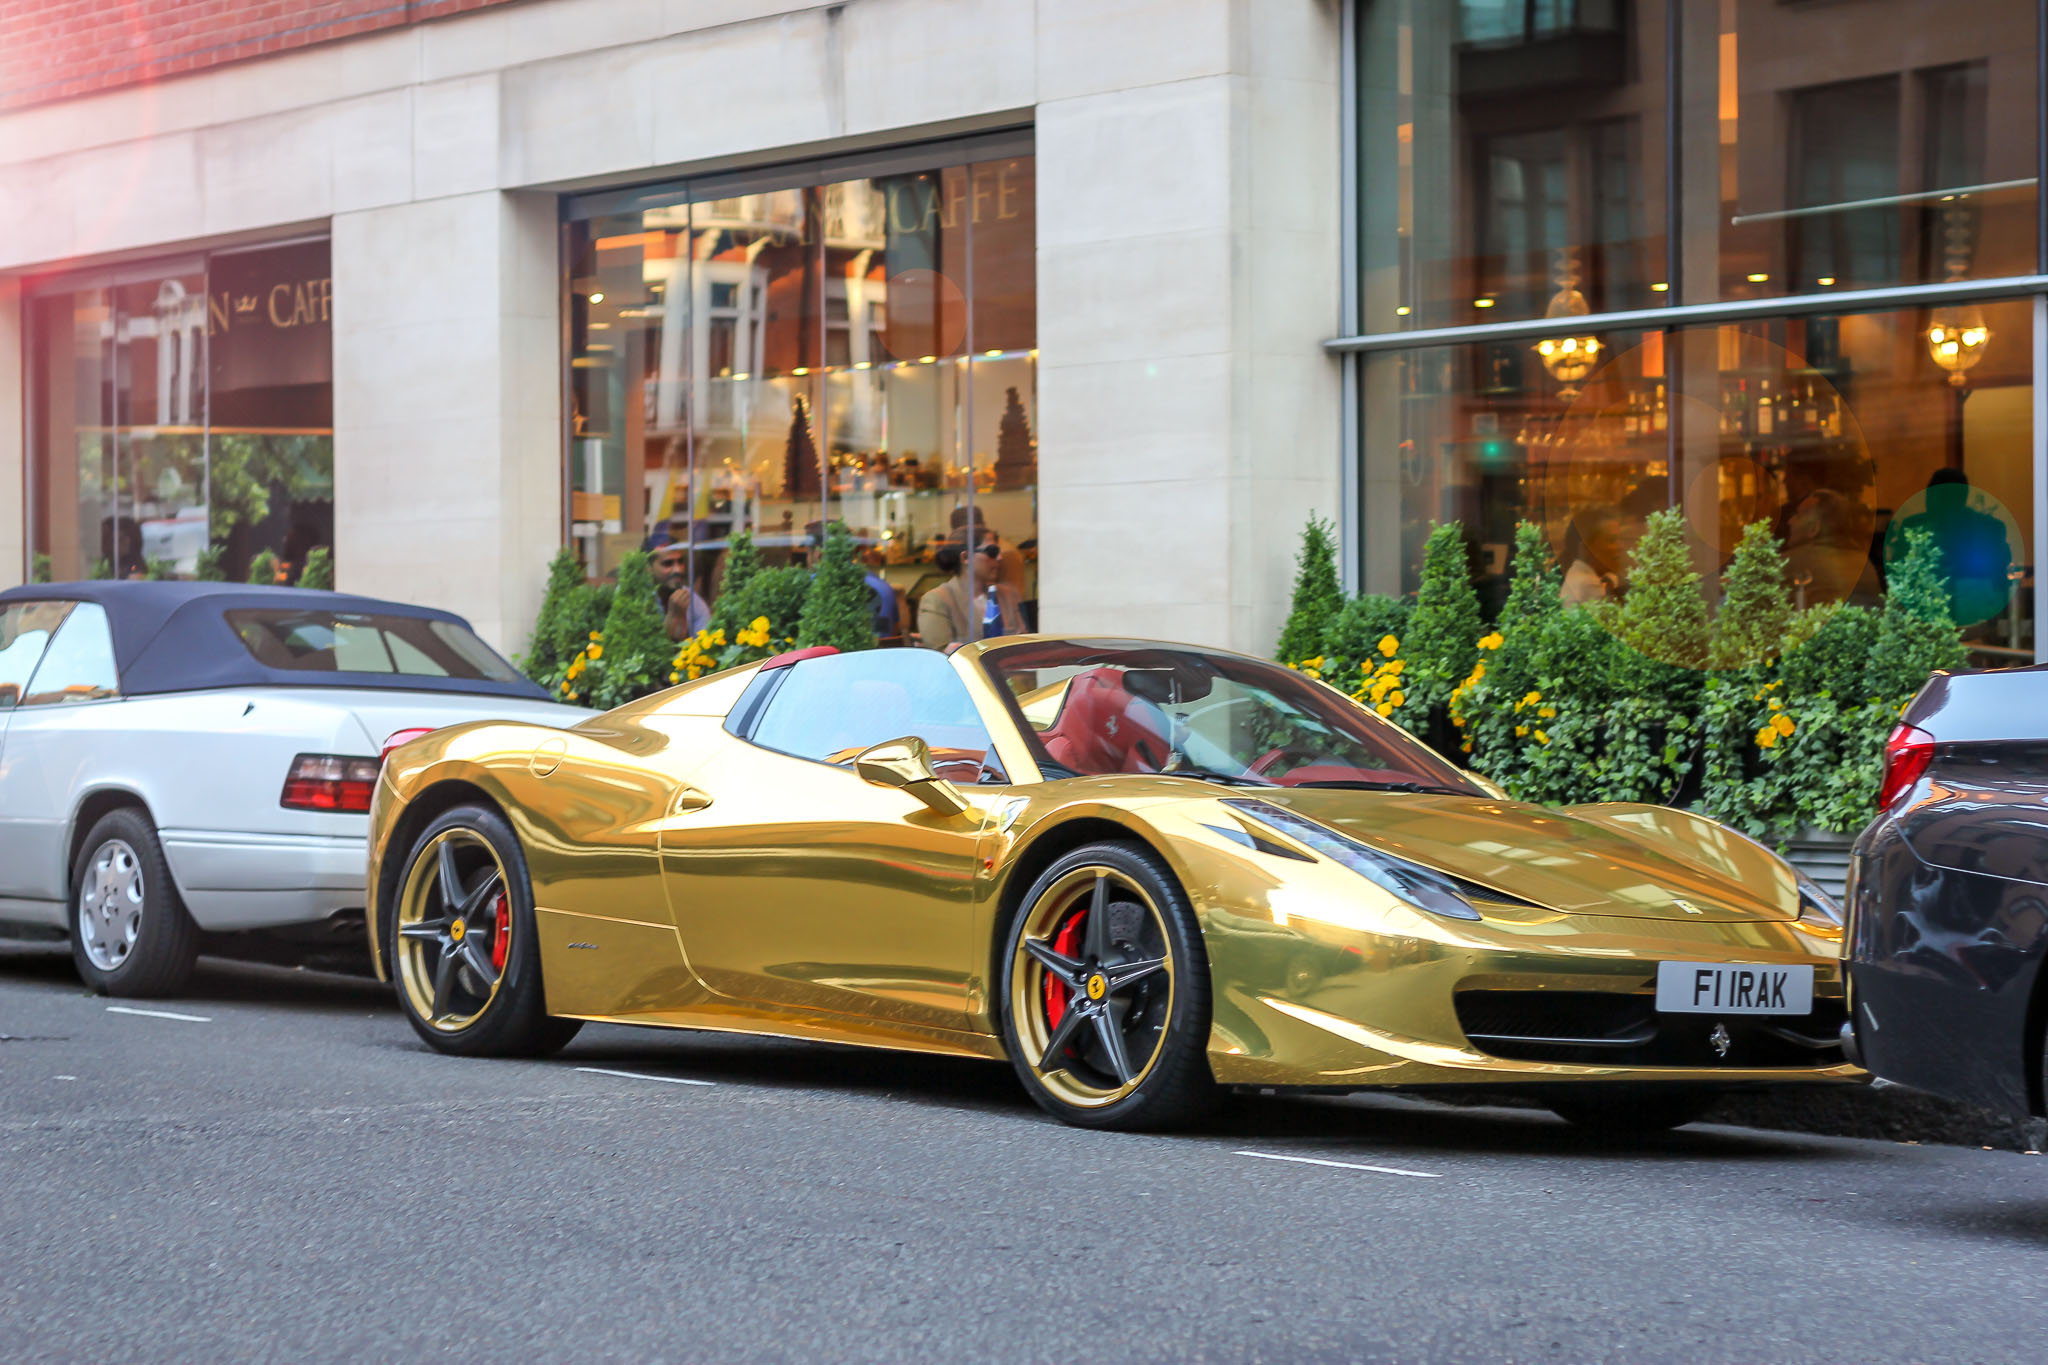 Knightsbridge Cars - (Spotting 7 Insane Super Cars)